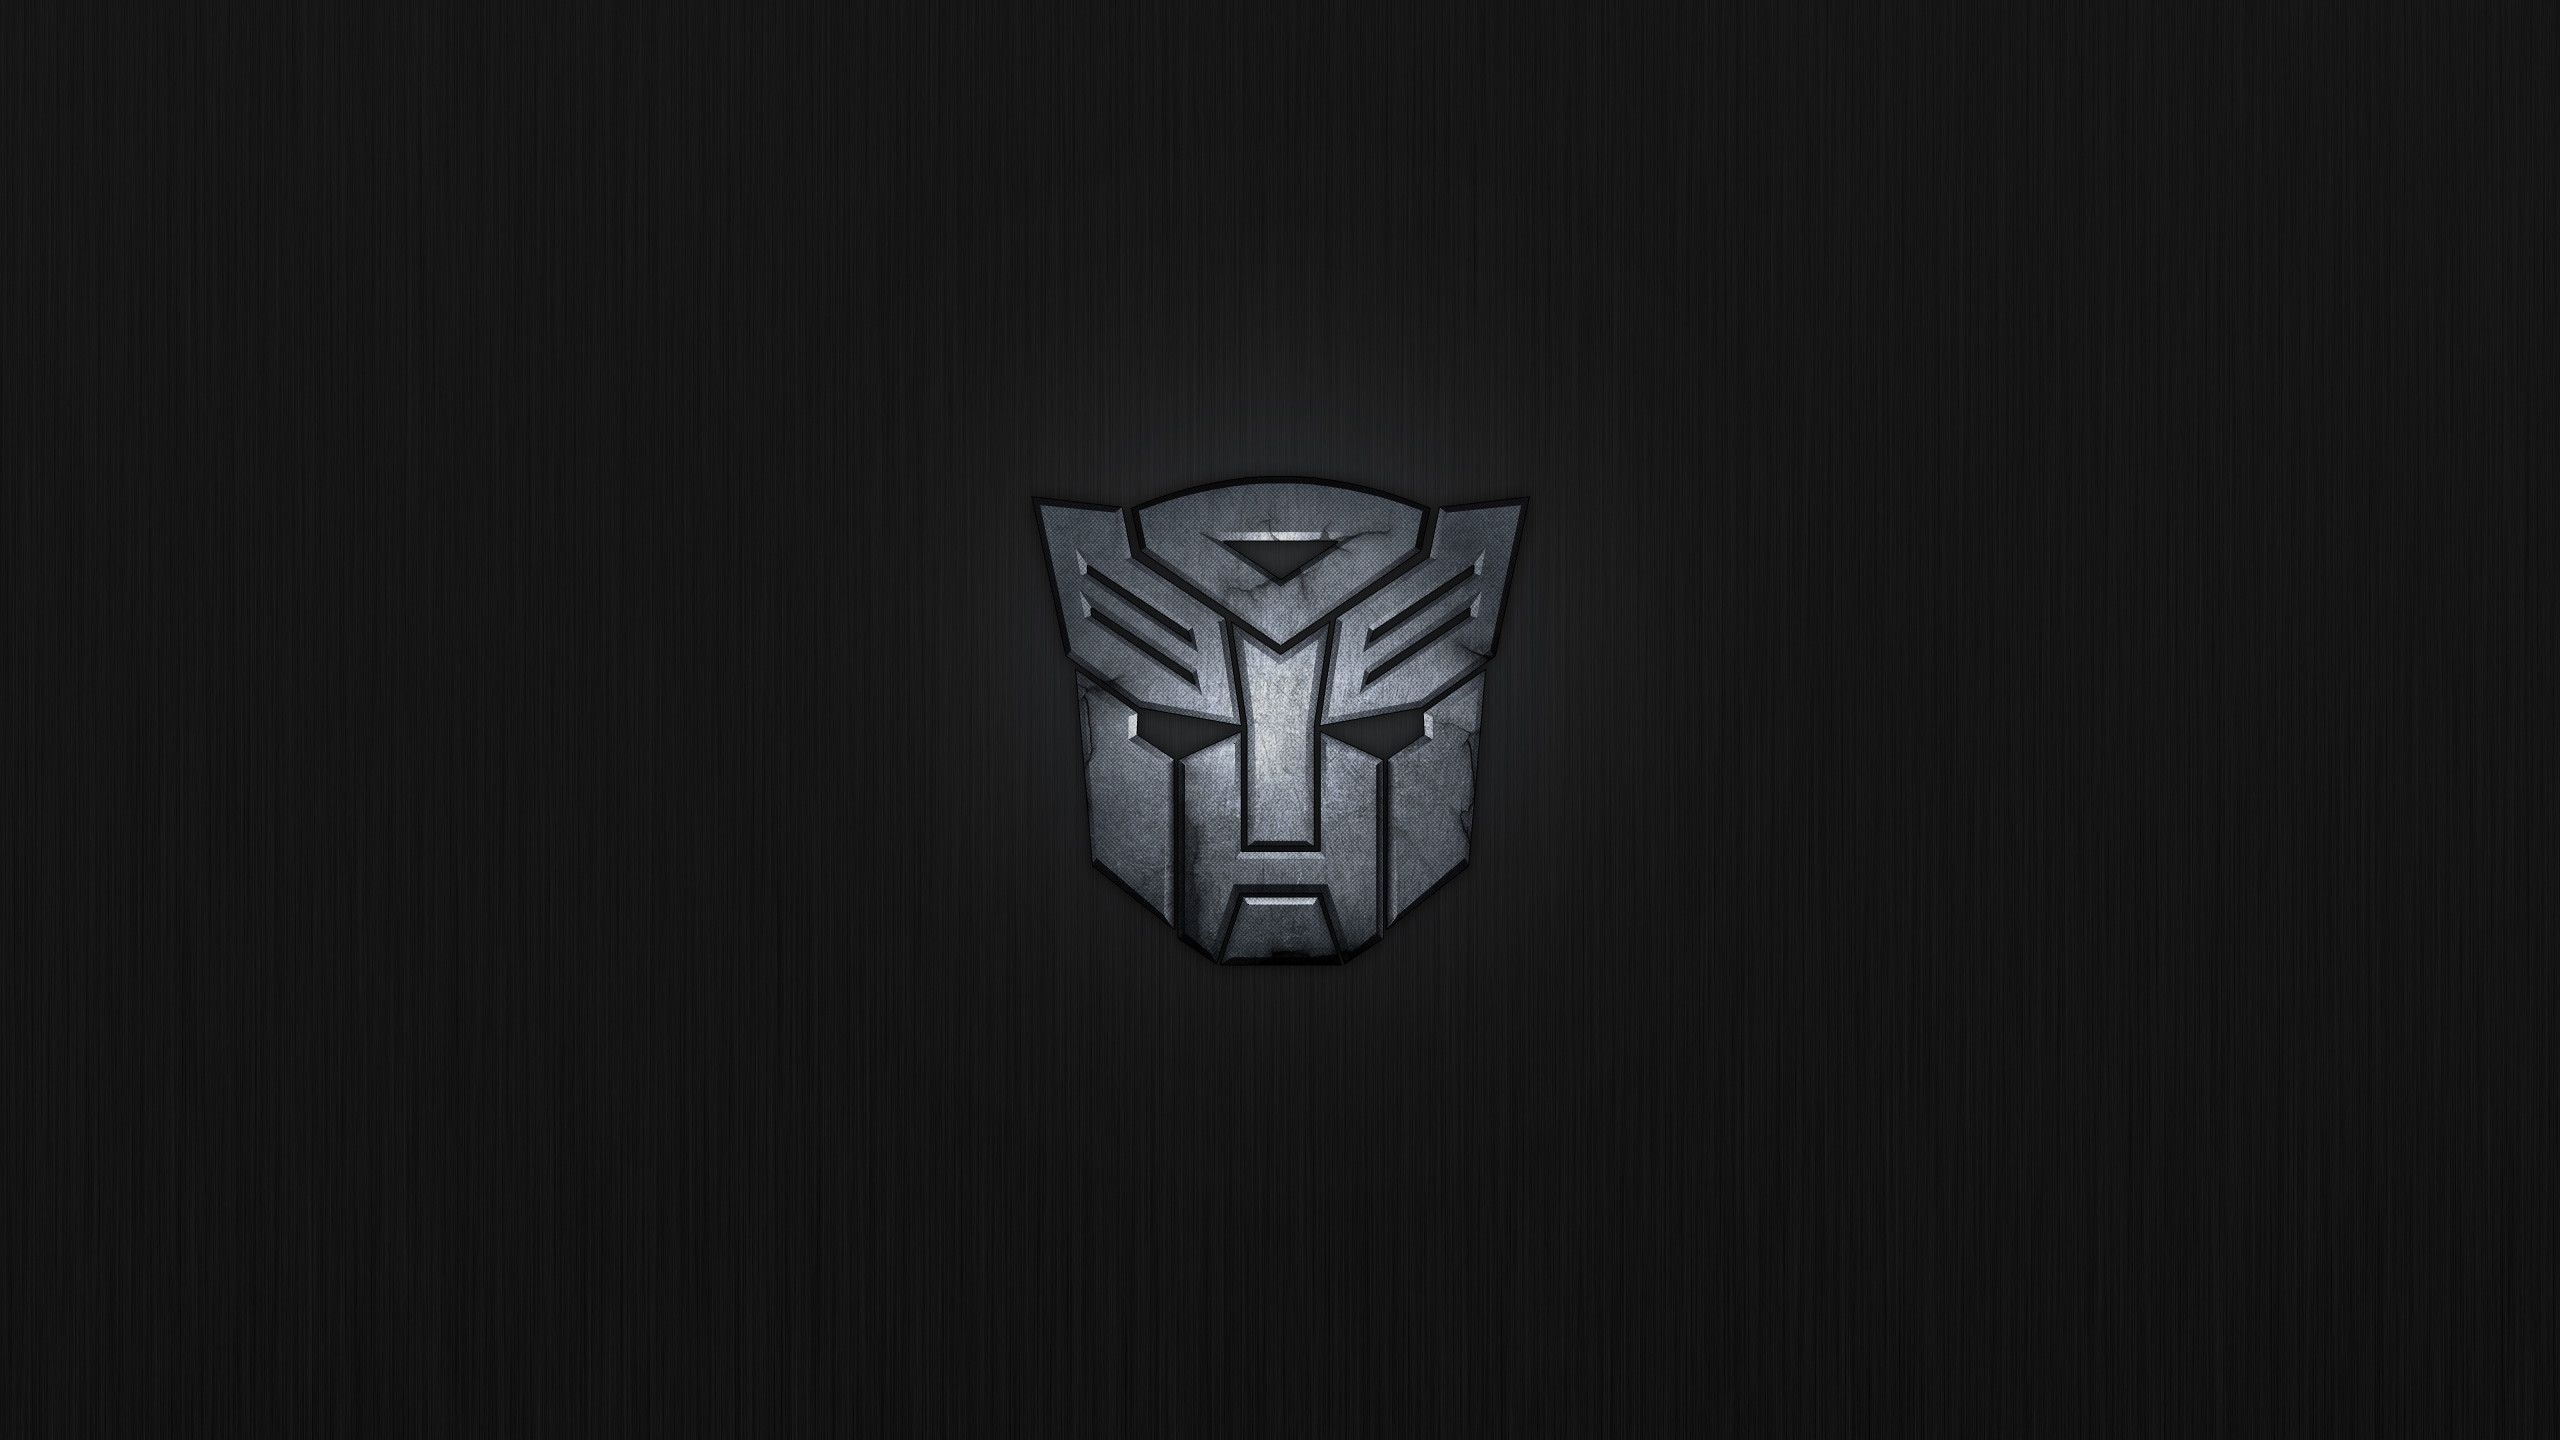 Download Transformers Autobot And Decepticon Logo 6 Wallpaper 2560x1440